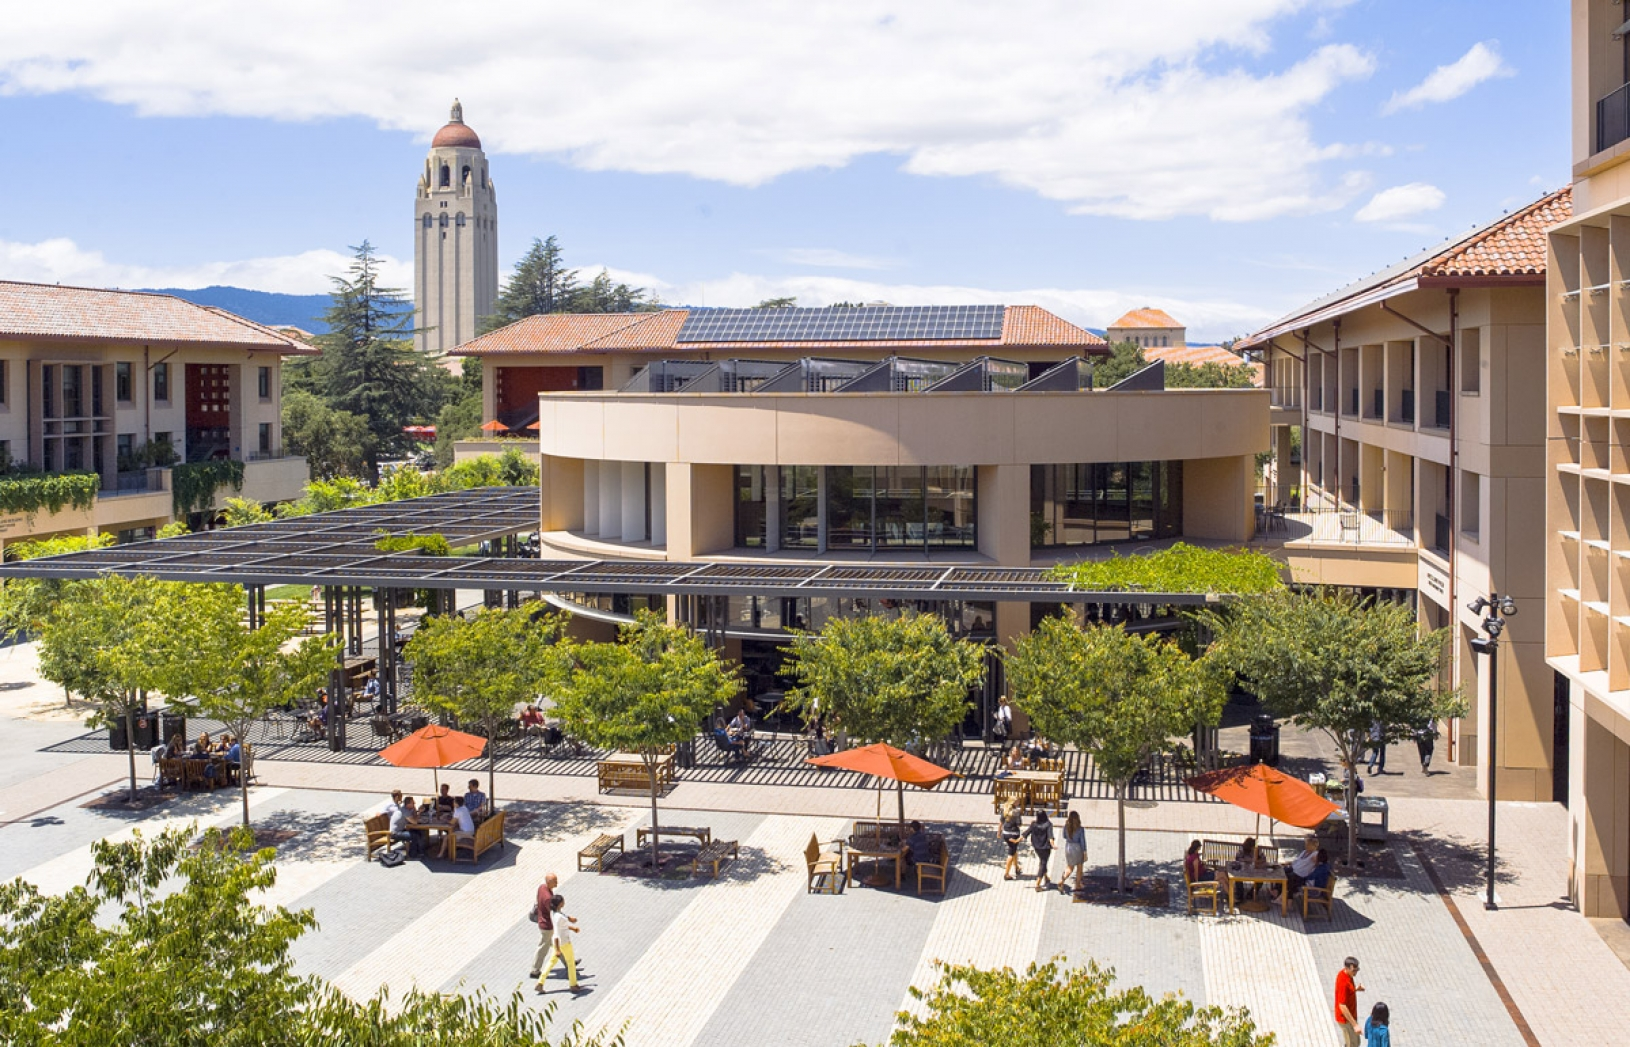 Average GRE Scores at Top Business Schools | Stanford GSB